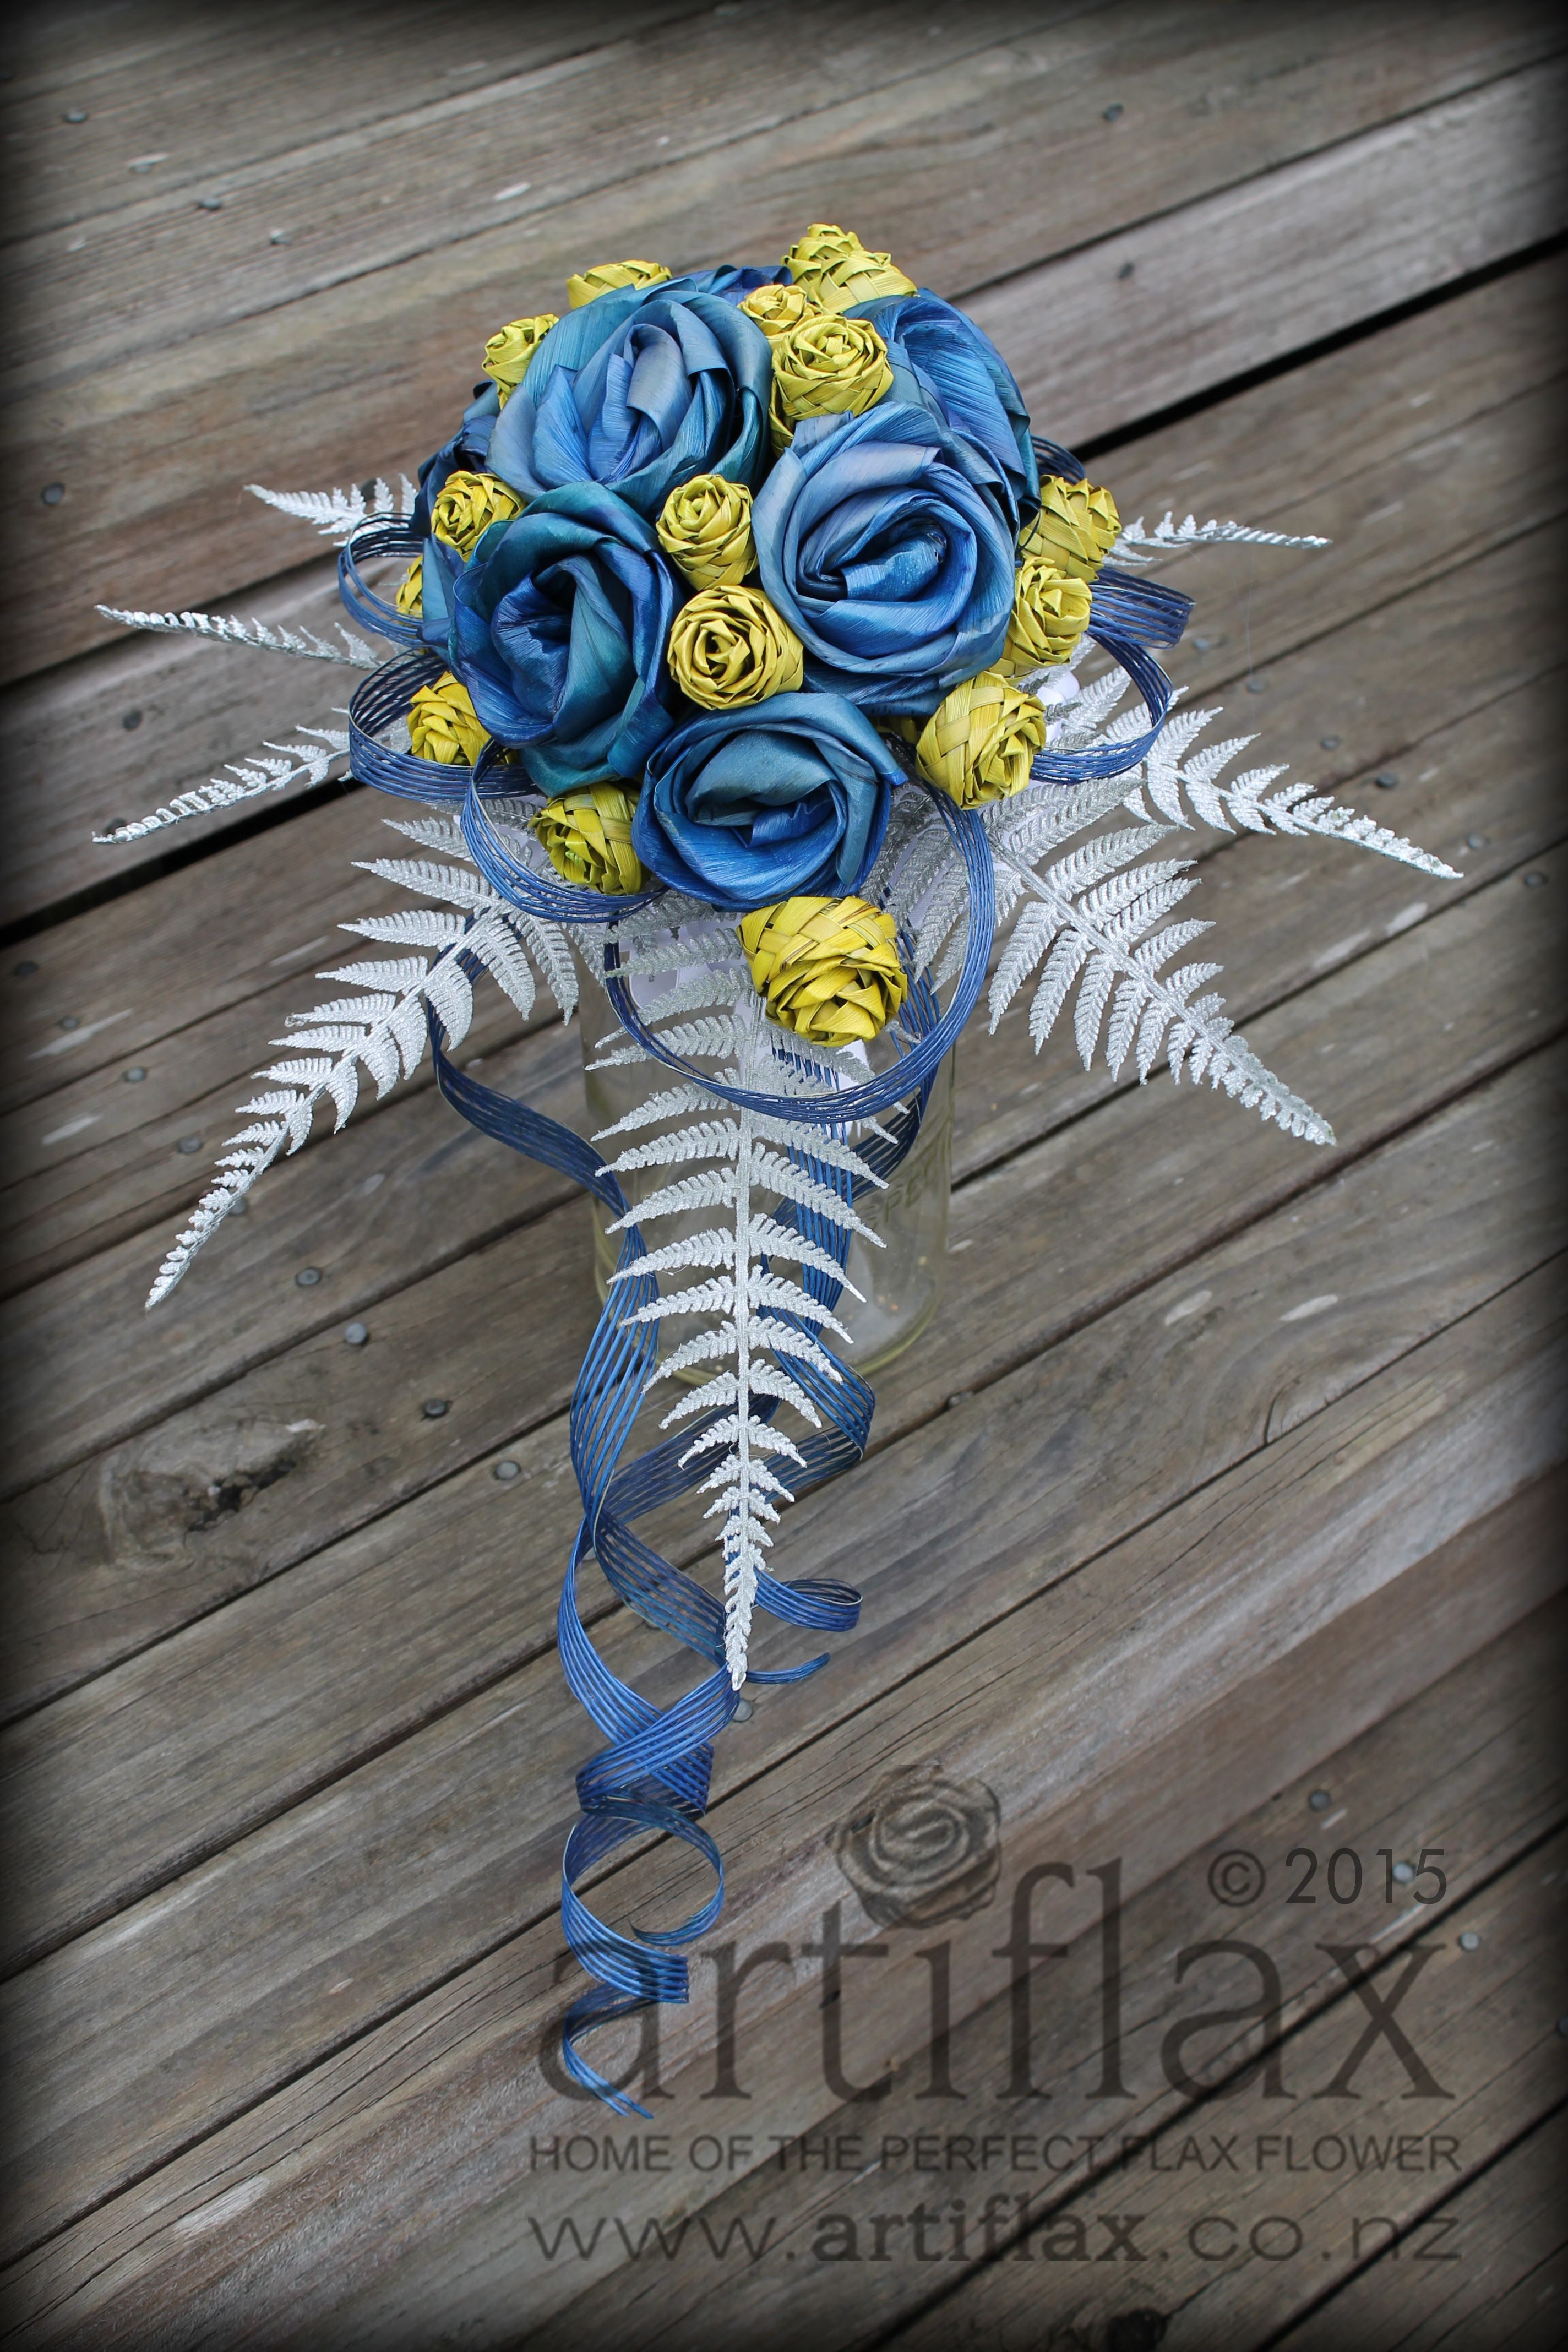 Blue Full Bloom Flax Flowers With Yellow Flax Woven Rose Buds With Silver Fern And Hapene Flax Foliage Bouquet Flax Flowers Flax Weaving Flower Bouquet Wedding